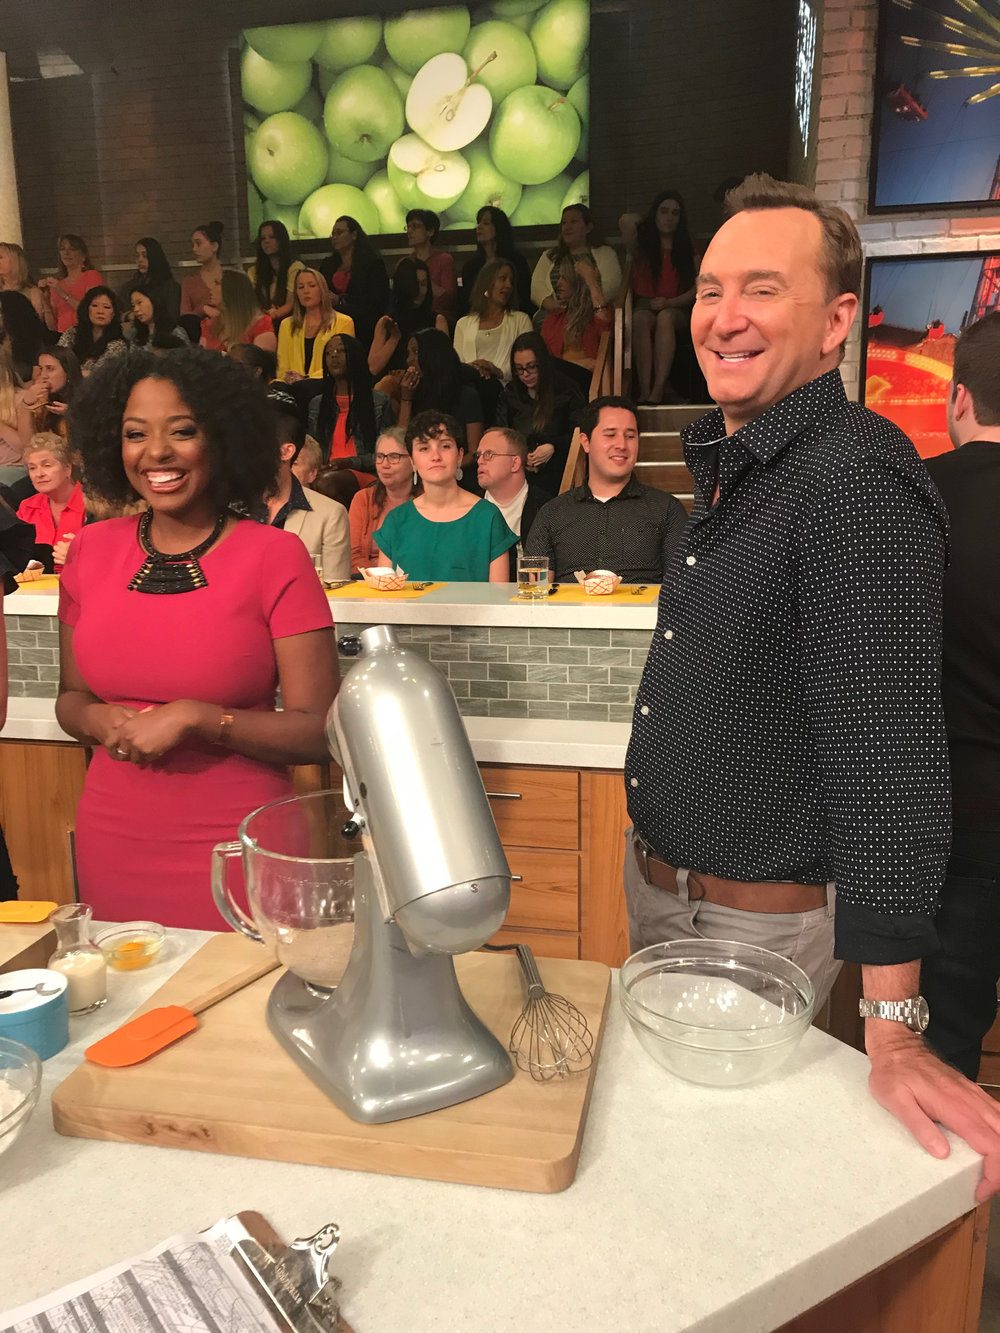 vallery lomas clinton kelly the chew.jpg